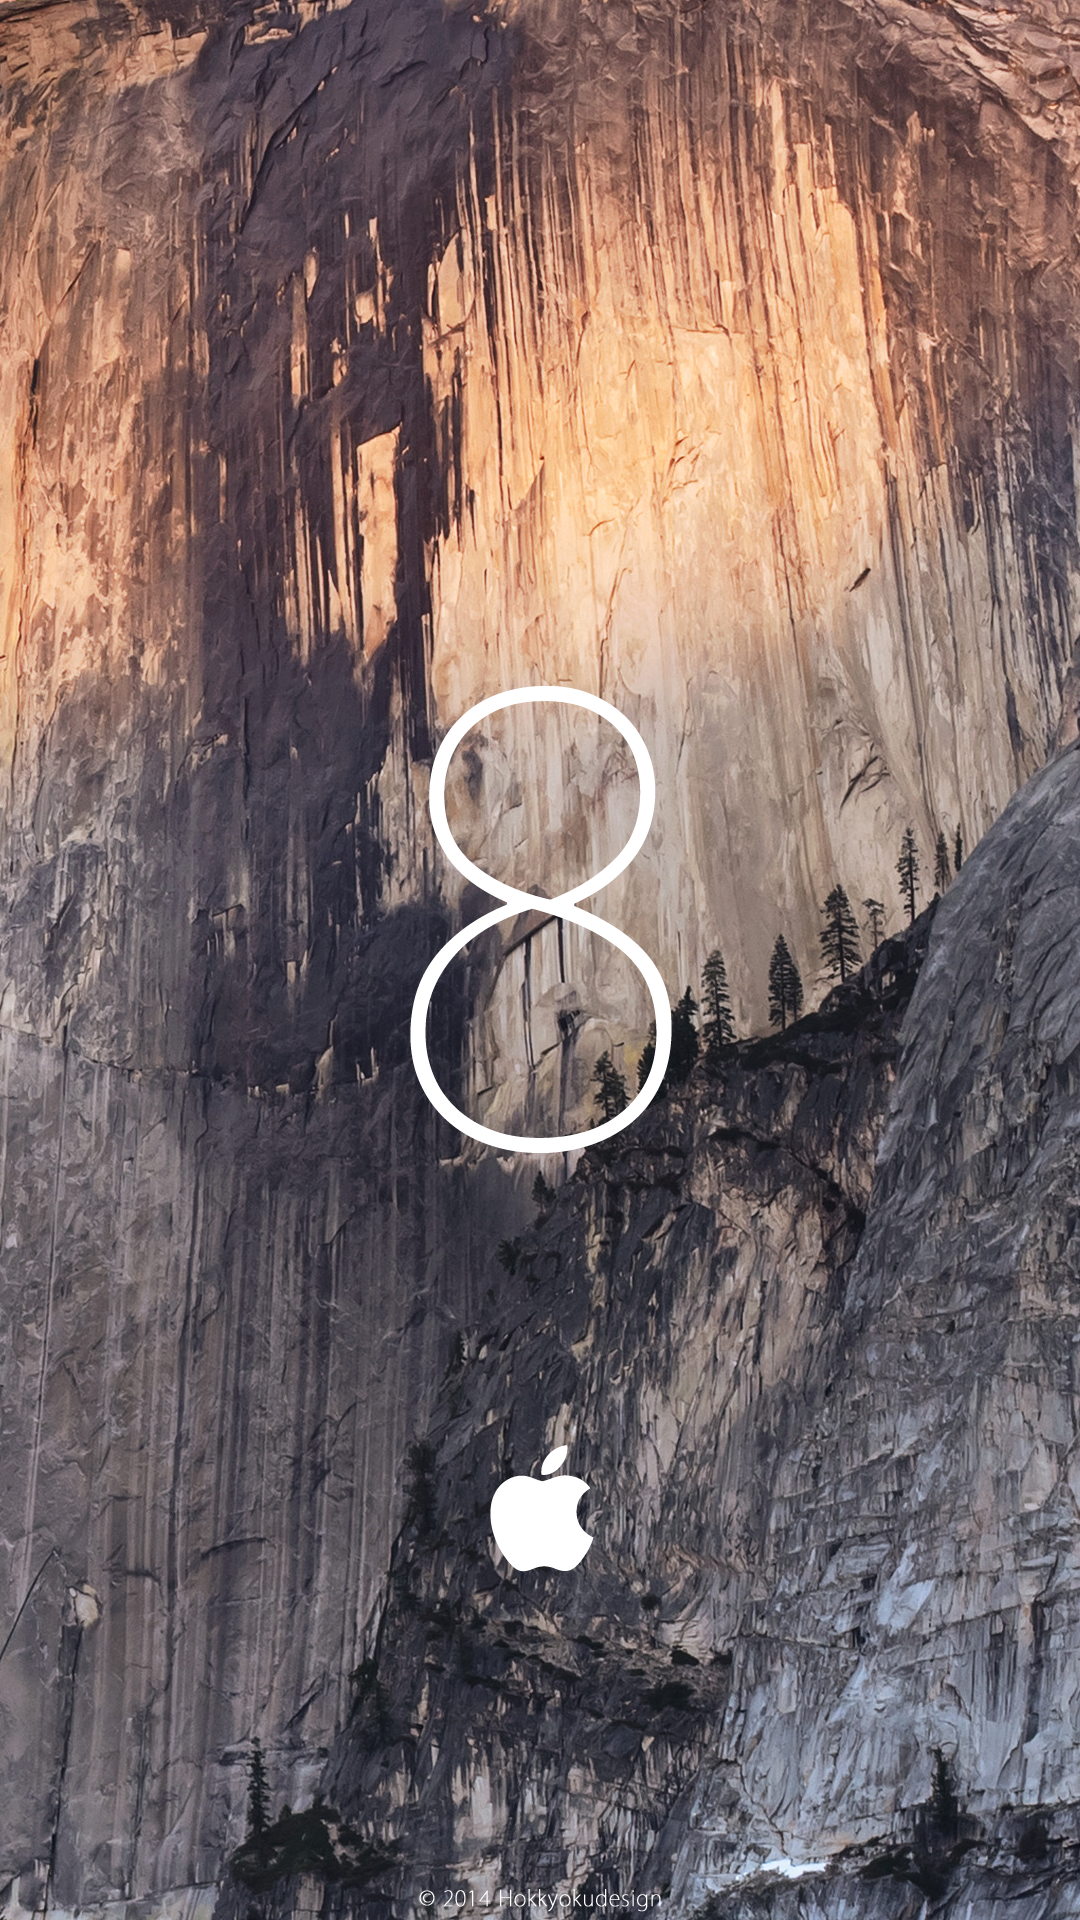 Ios Hd壁紙 Yosemite With 8 And Applemark Under Ios8 Yosemite Wallpaper For Iphone